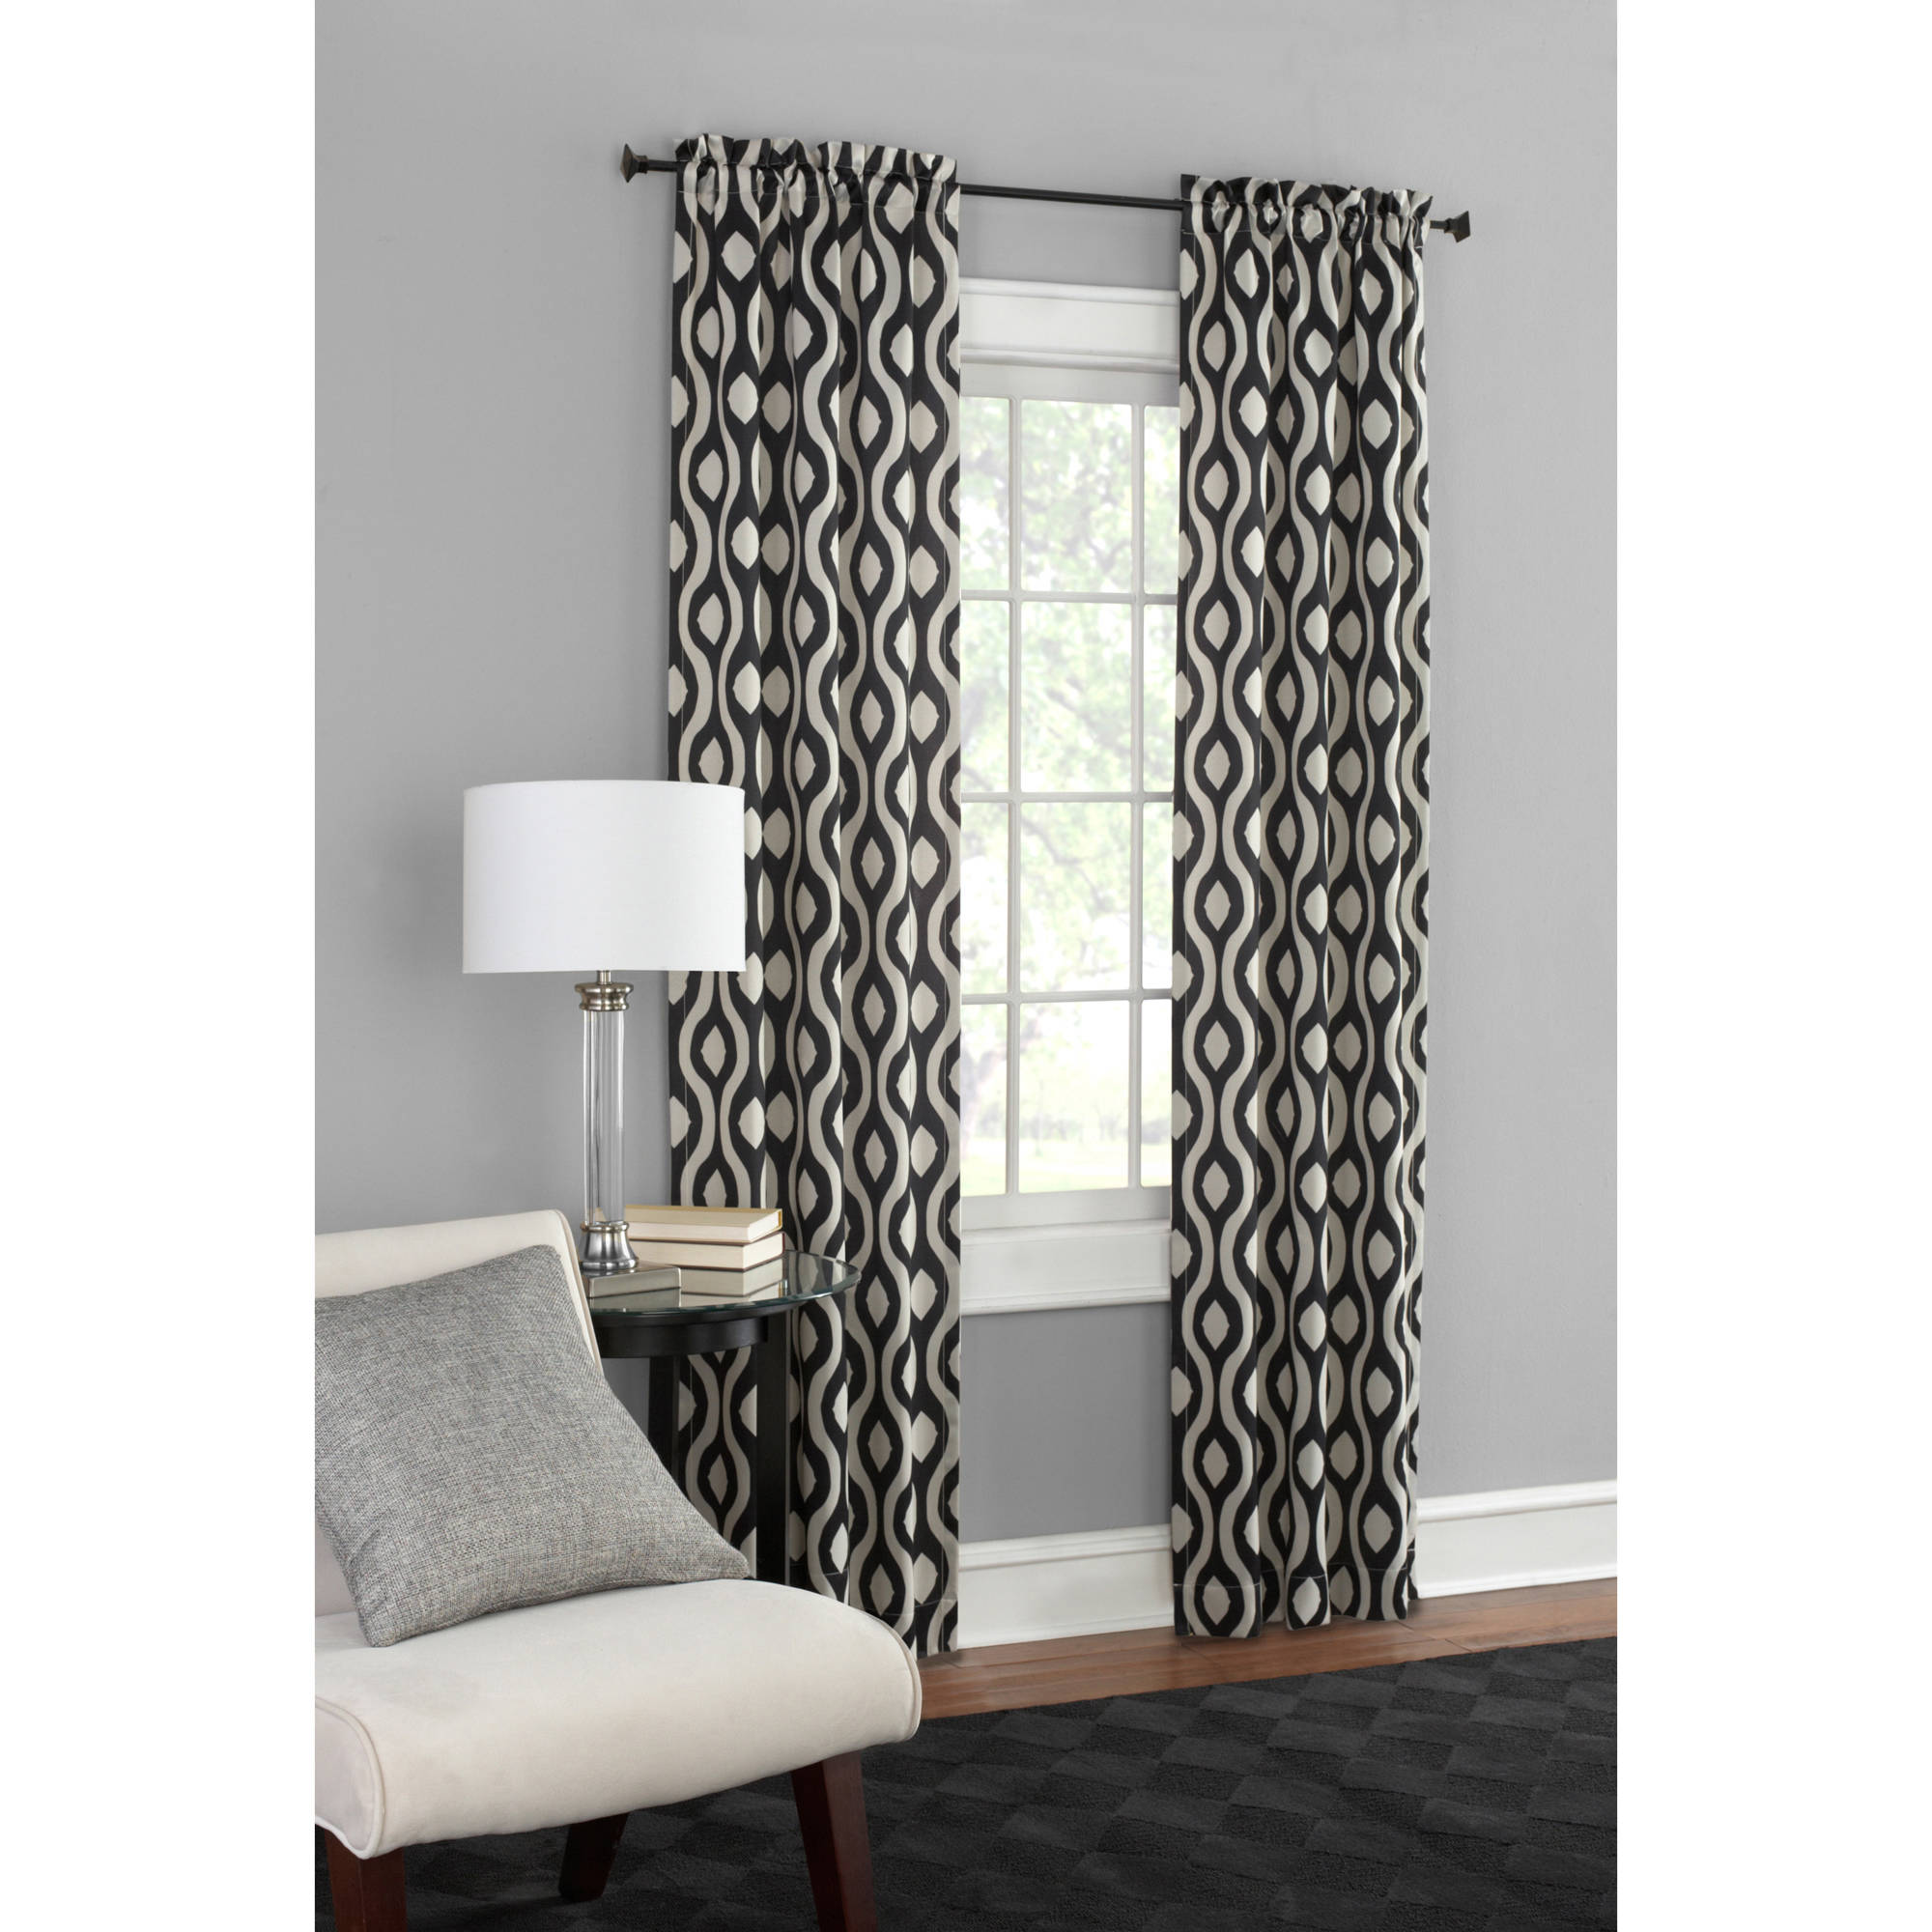 Mainstays Thermal Print Woven Curtain Panels, Set of 2, Multiple Colors